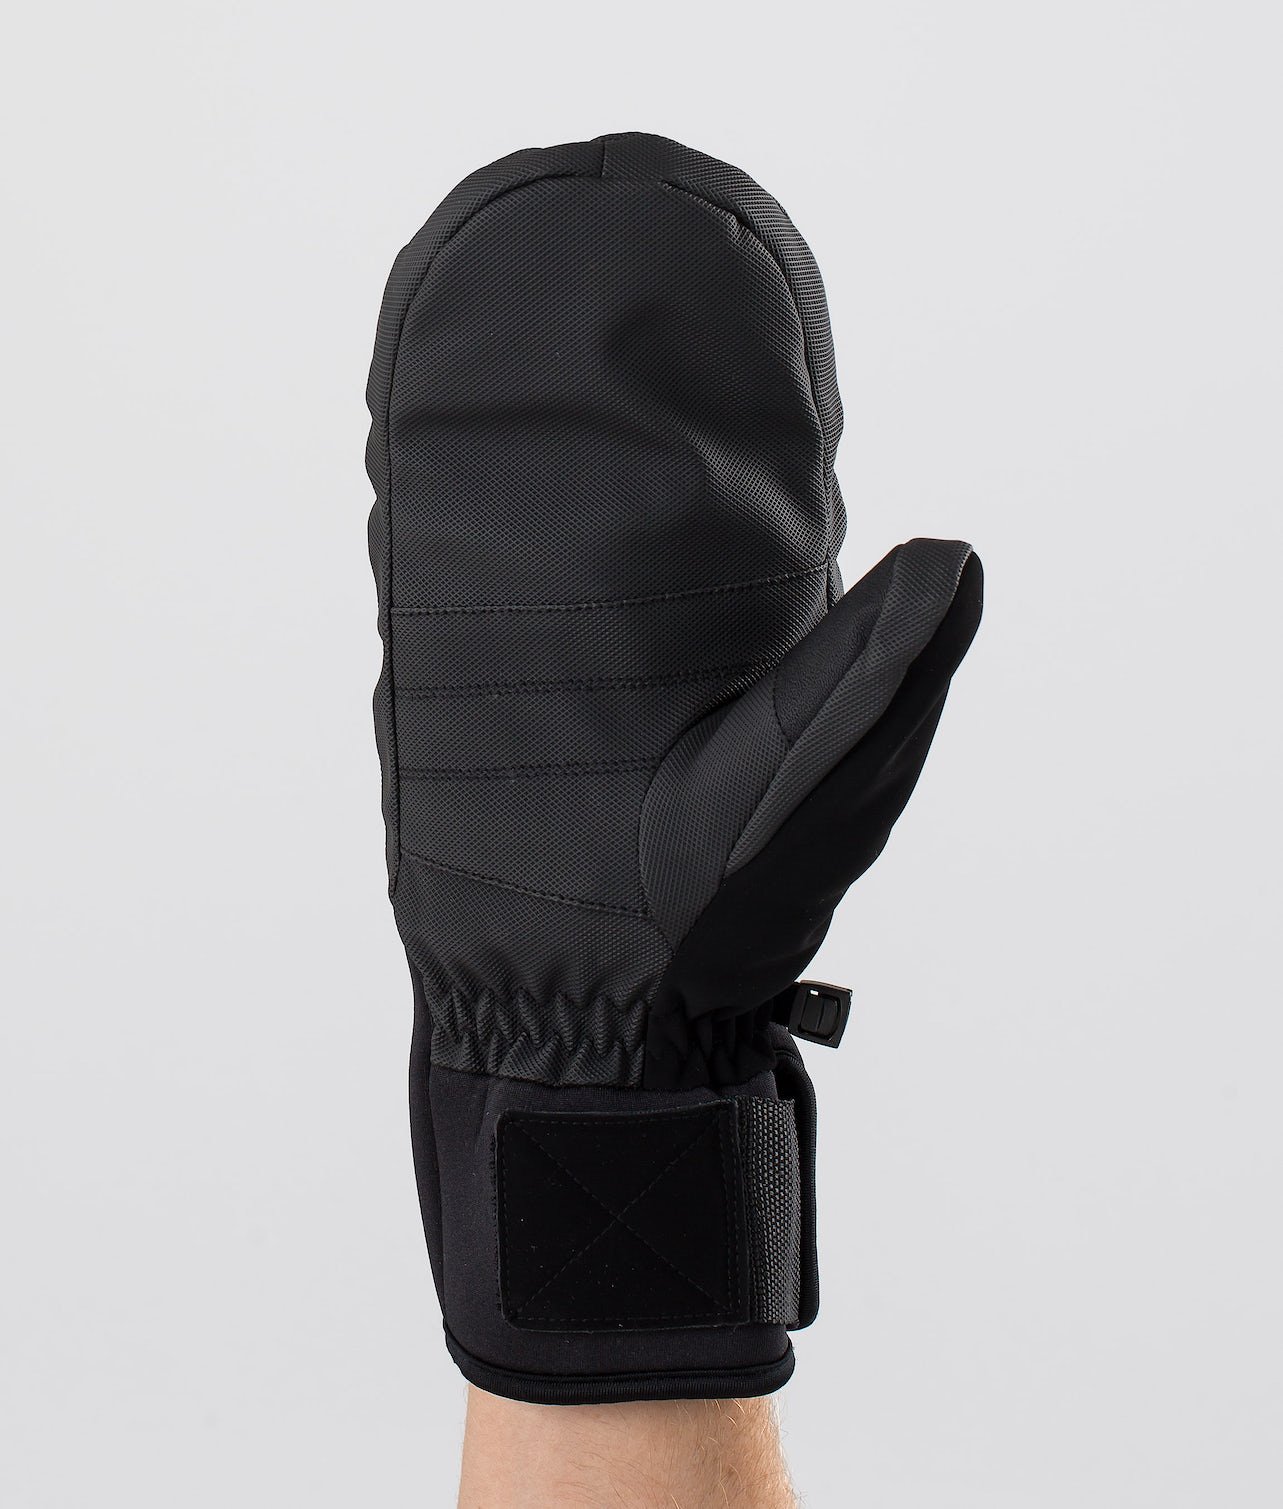 Buy Kilo Mitt Ski Gloves from Montec at Ridestore.com - Always free shipping, free returns and 30 days money back guarantee